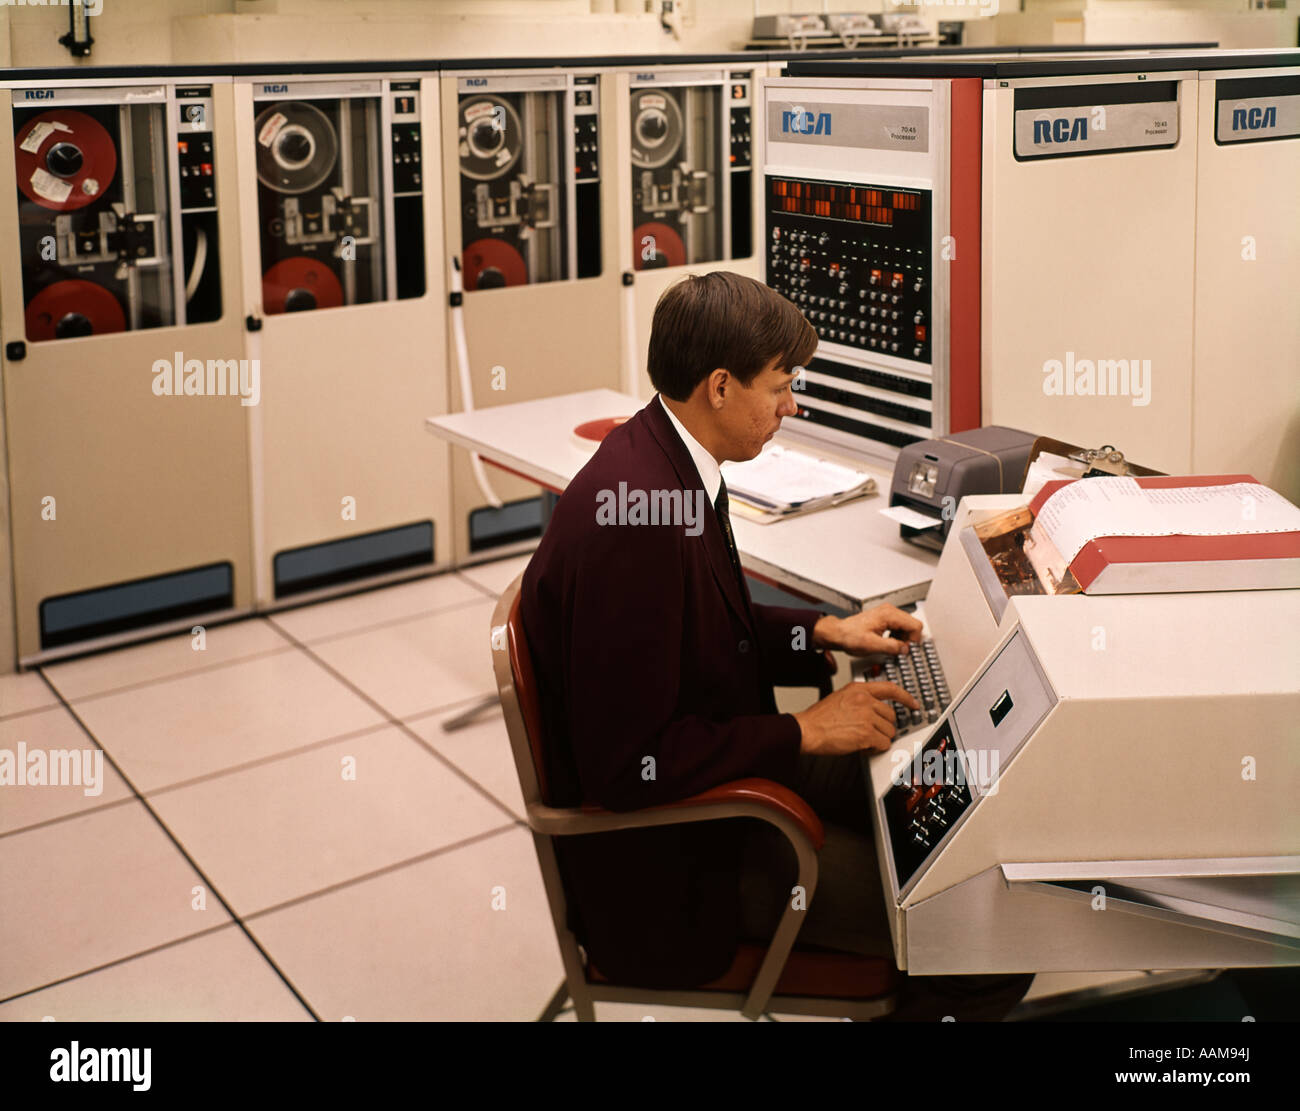 1970s MAN SEATED KEYBOARD WORK STATION RCA INFORMATION SYSTEM DATA PROCESSING MAINFRAME TECHNOLOGY - Stock Image